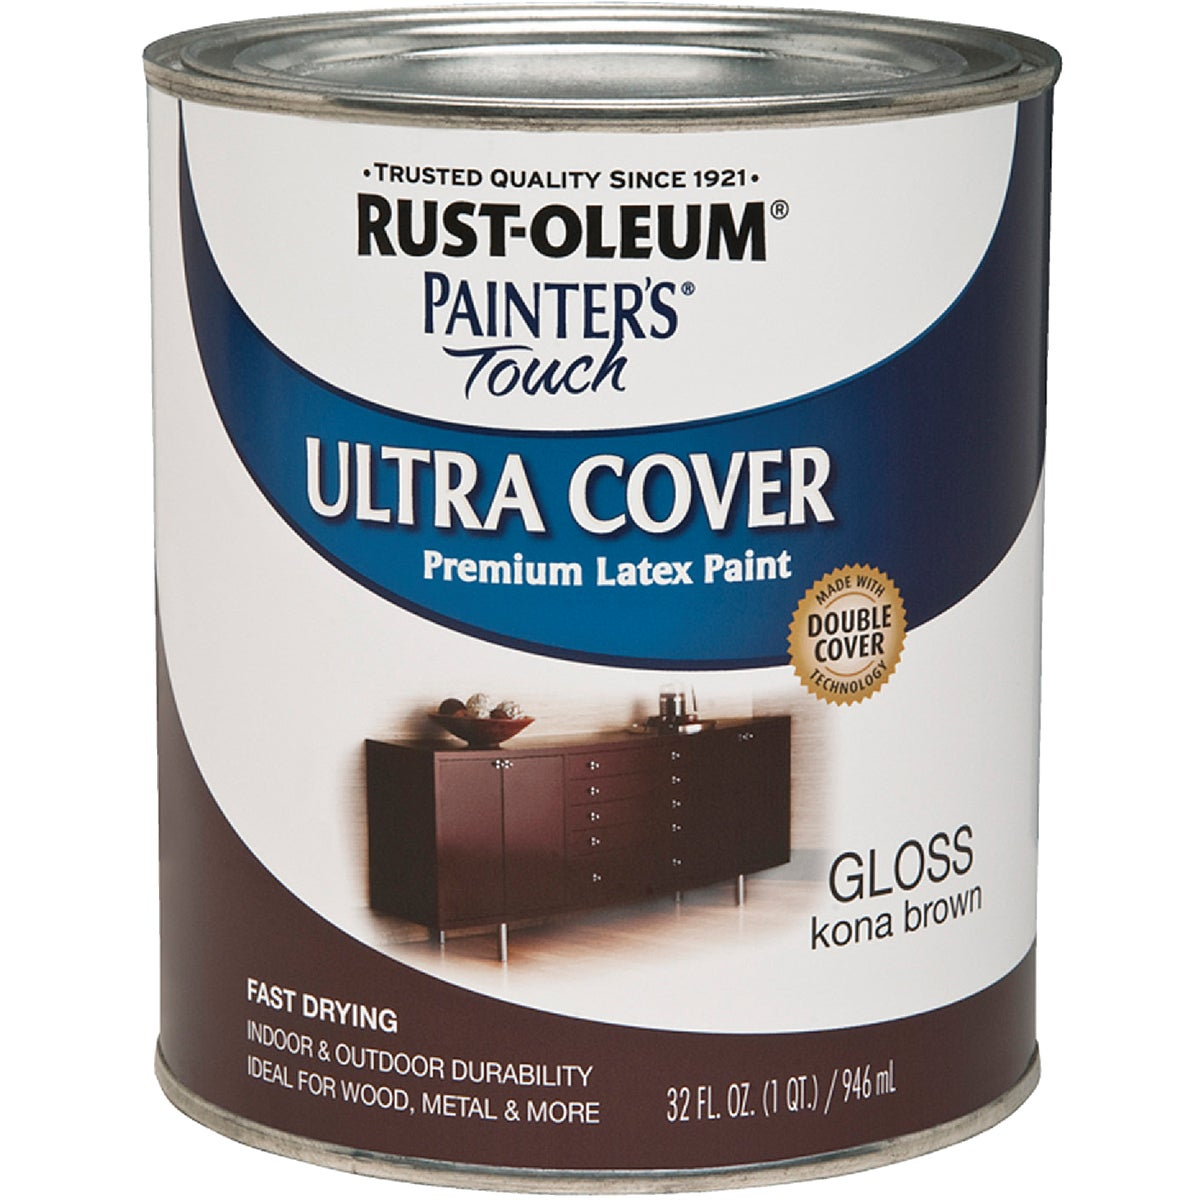 KONA BROWN LATEX PAINT - 1977502 by Rustoleum